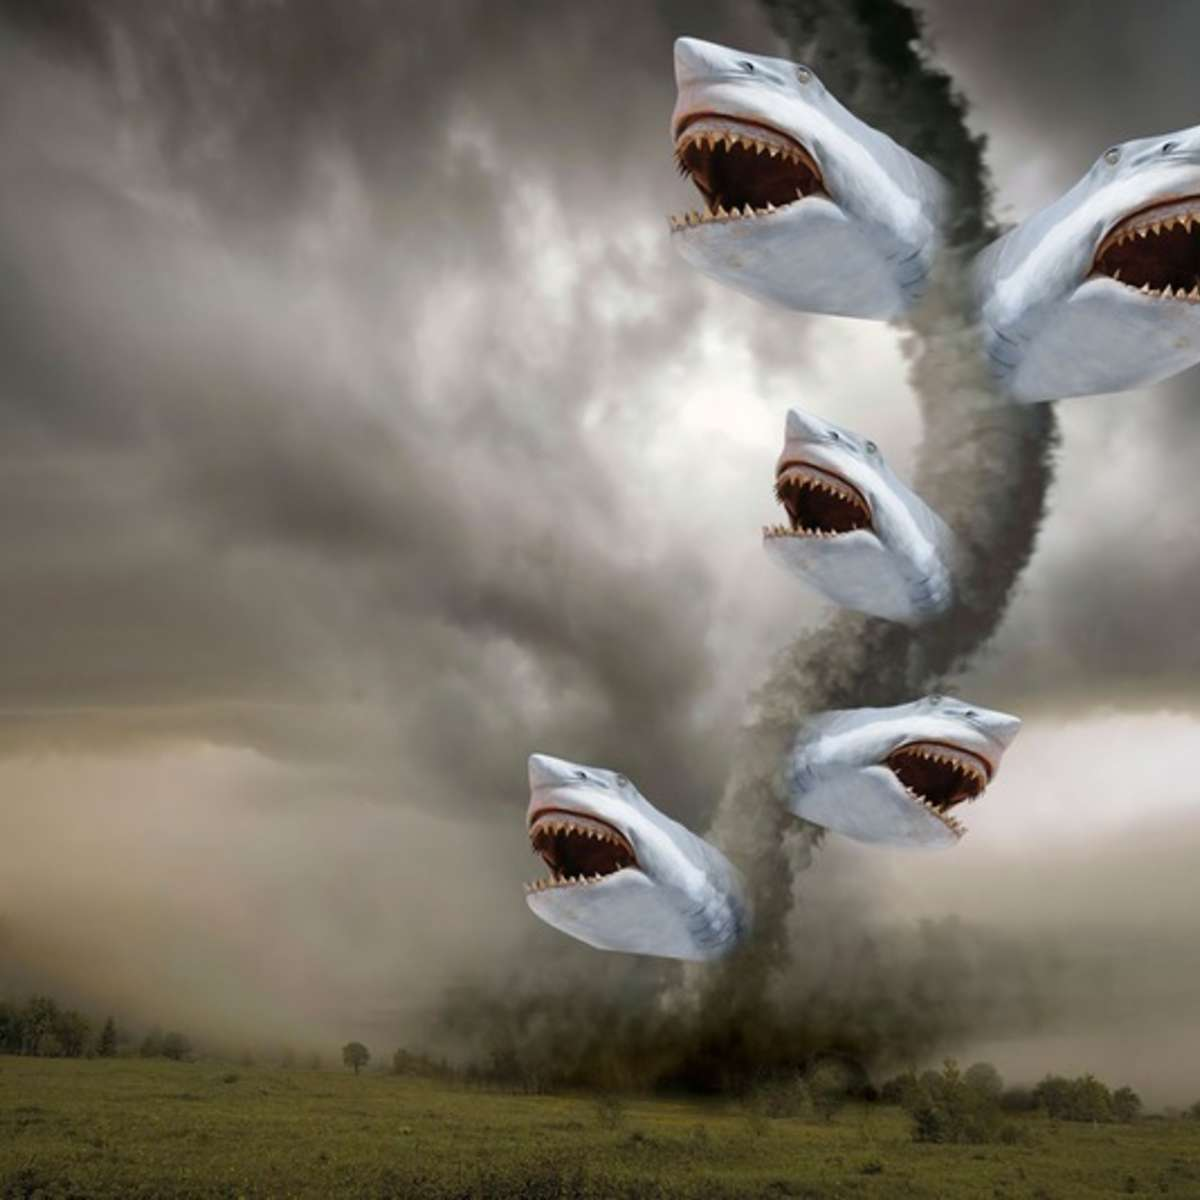 sharknado-attack.jpg